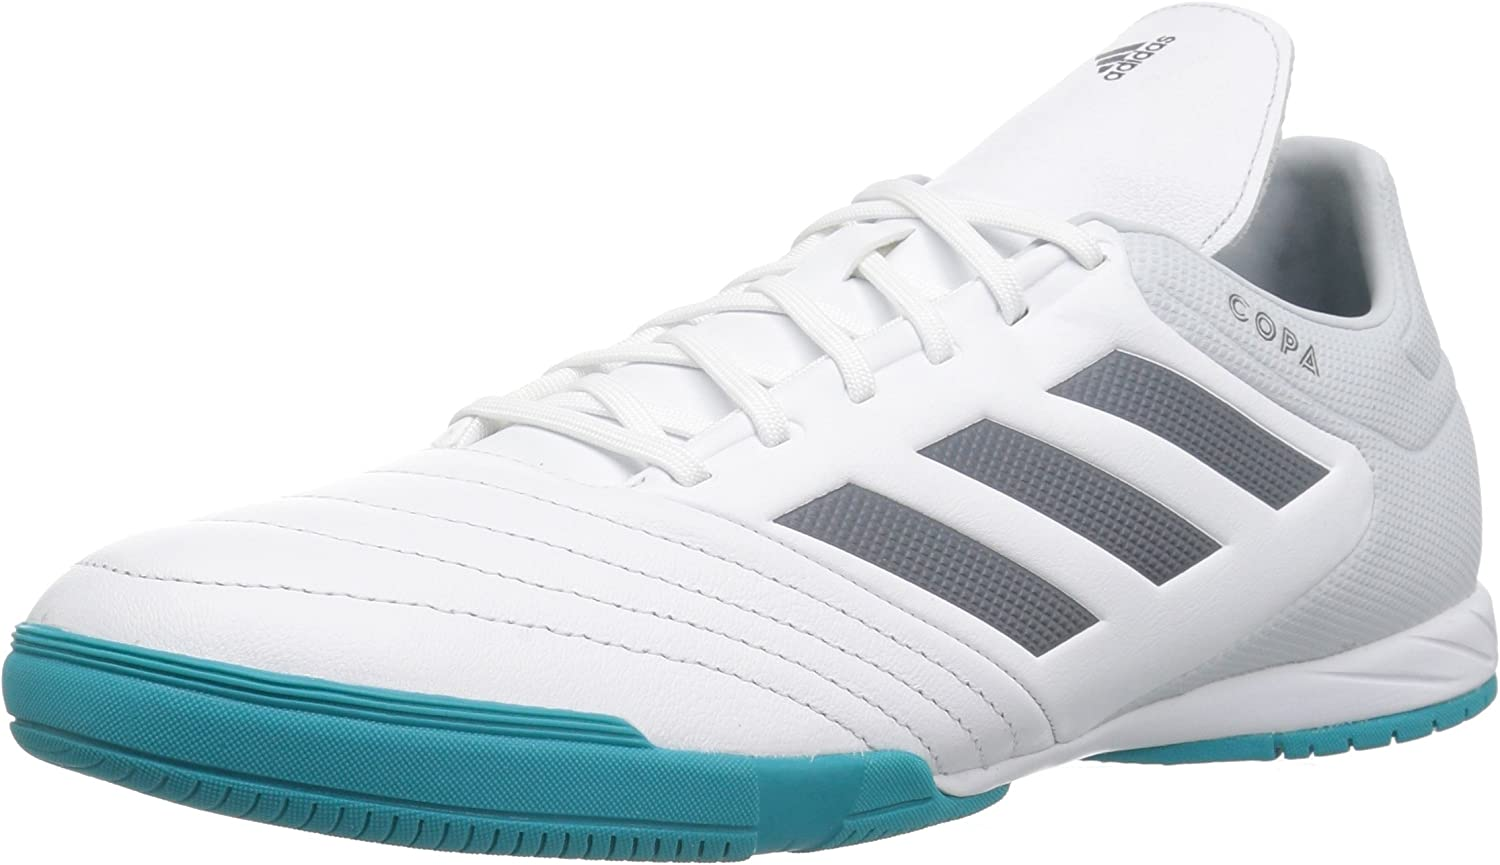 adidas Unisex-Adult COPA Tango Shoe Clearance SALE Limited time in New product!! 17.3 Soccer